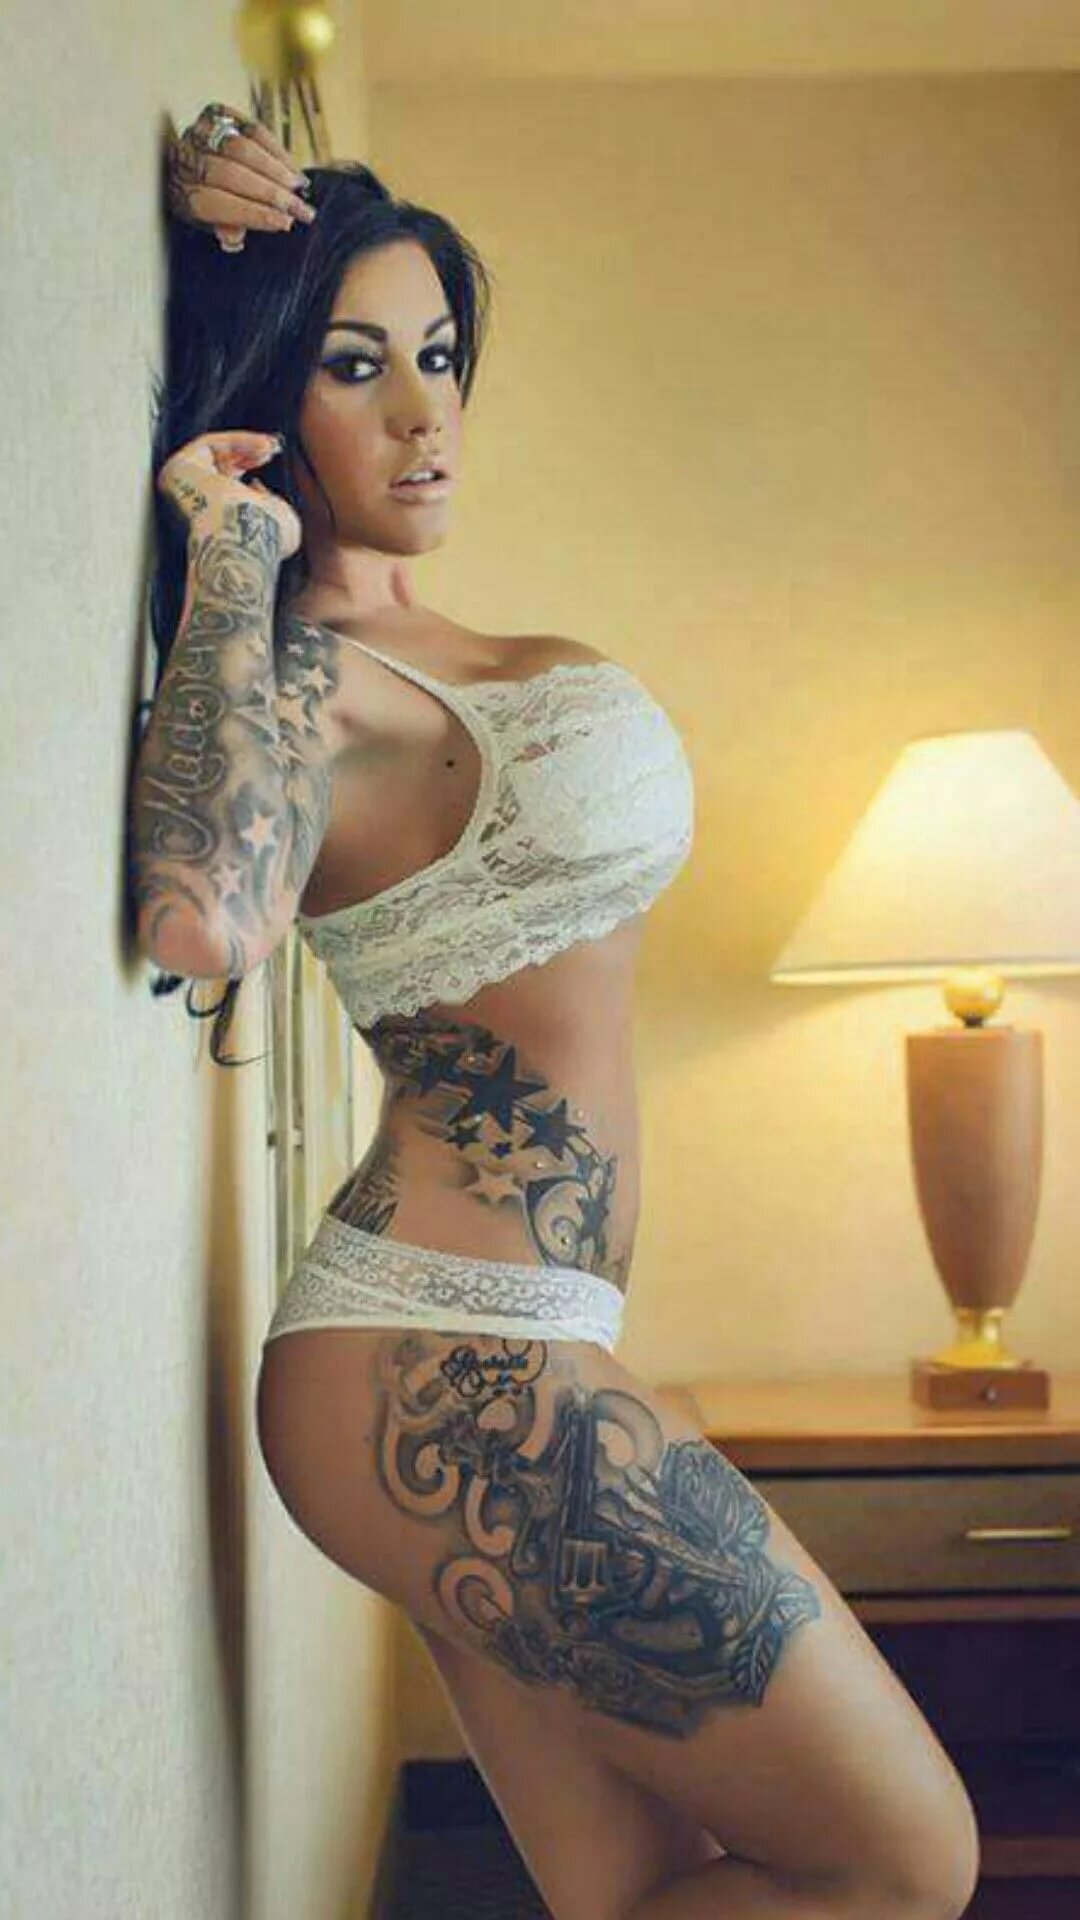 Hot tattoos on women nude #5